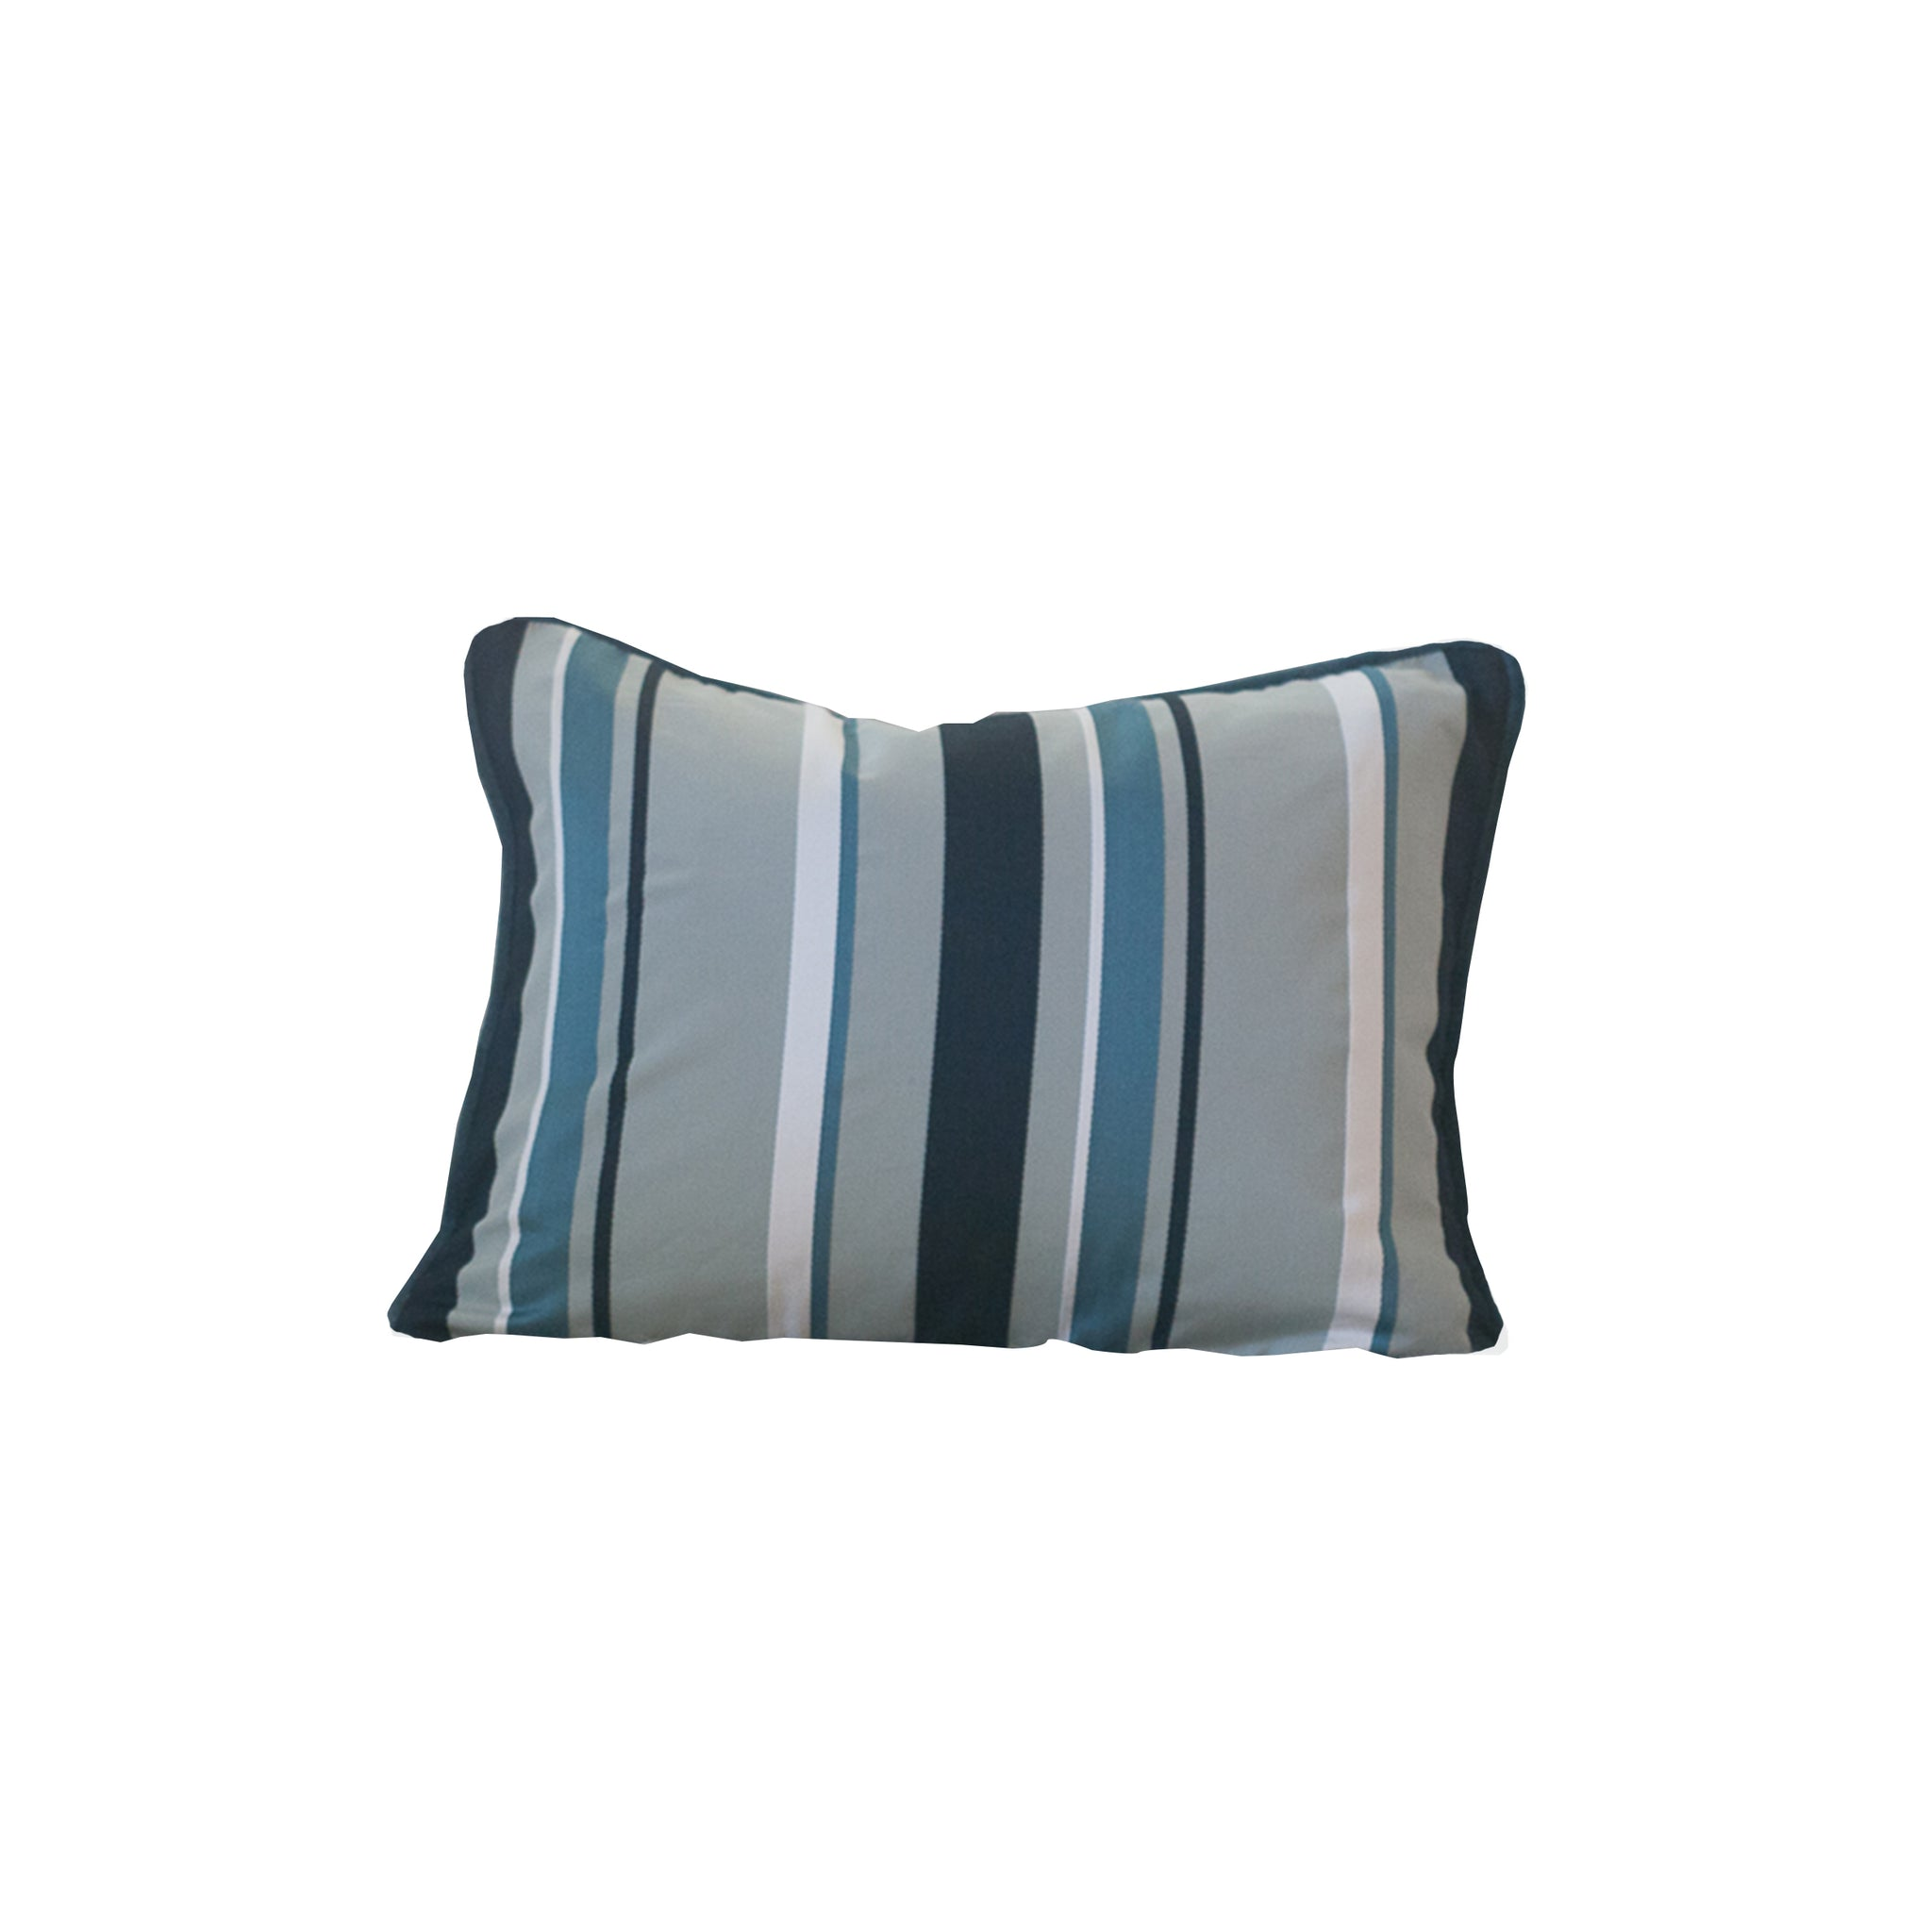 Hawthorne House Bespoke 14 x 18 Multi Stripe Pillow